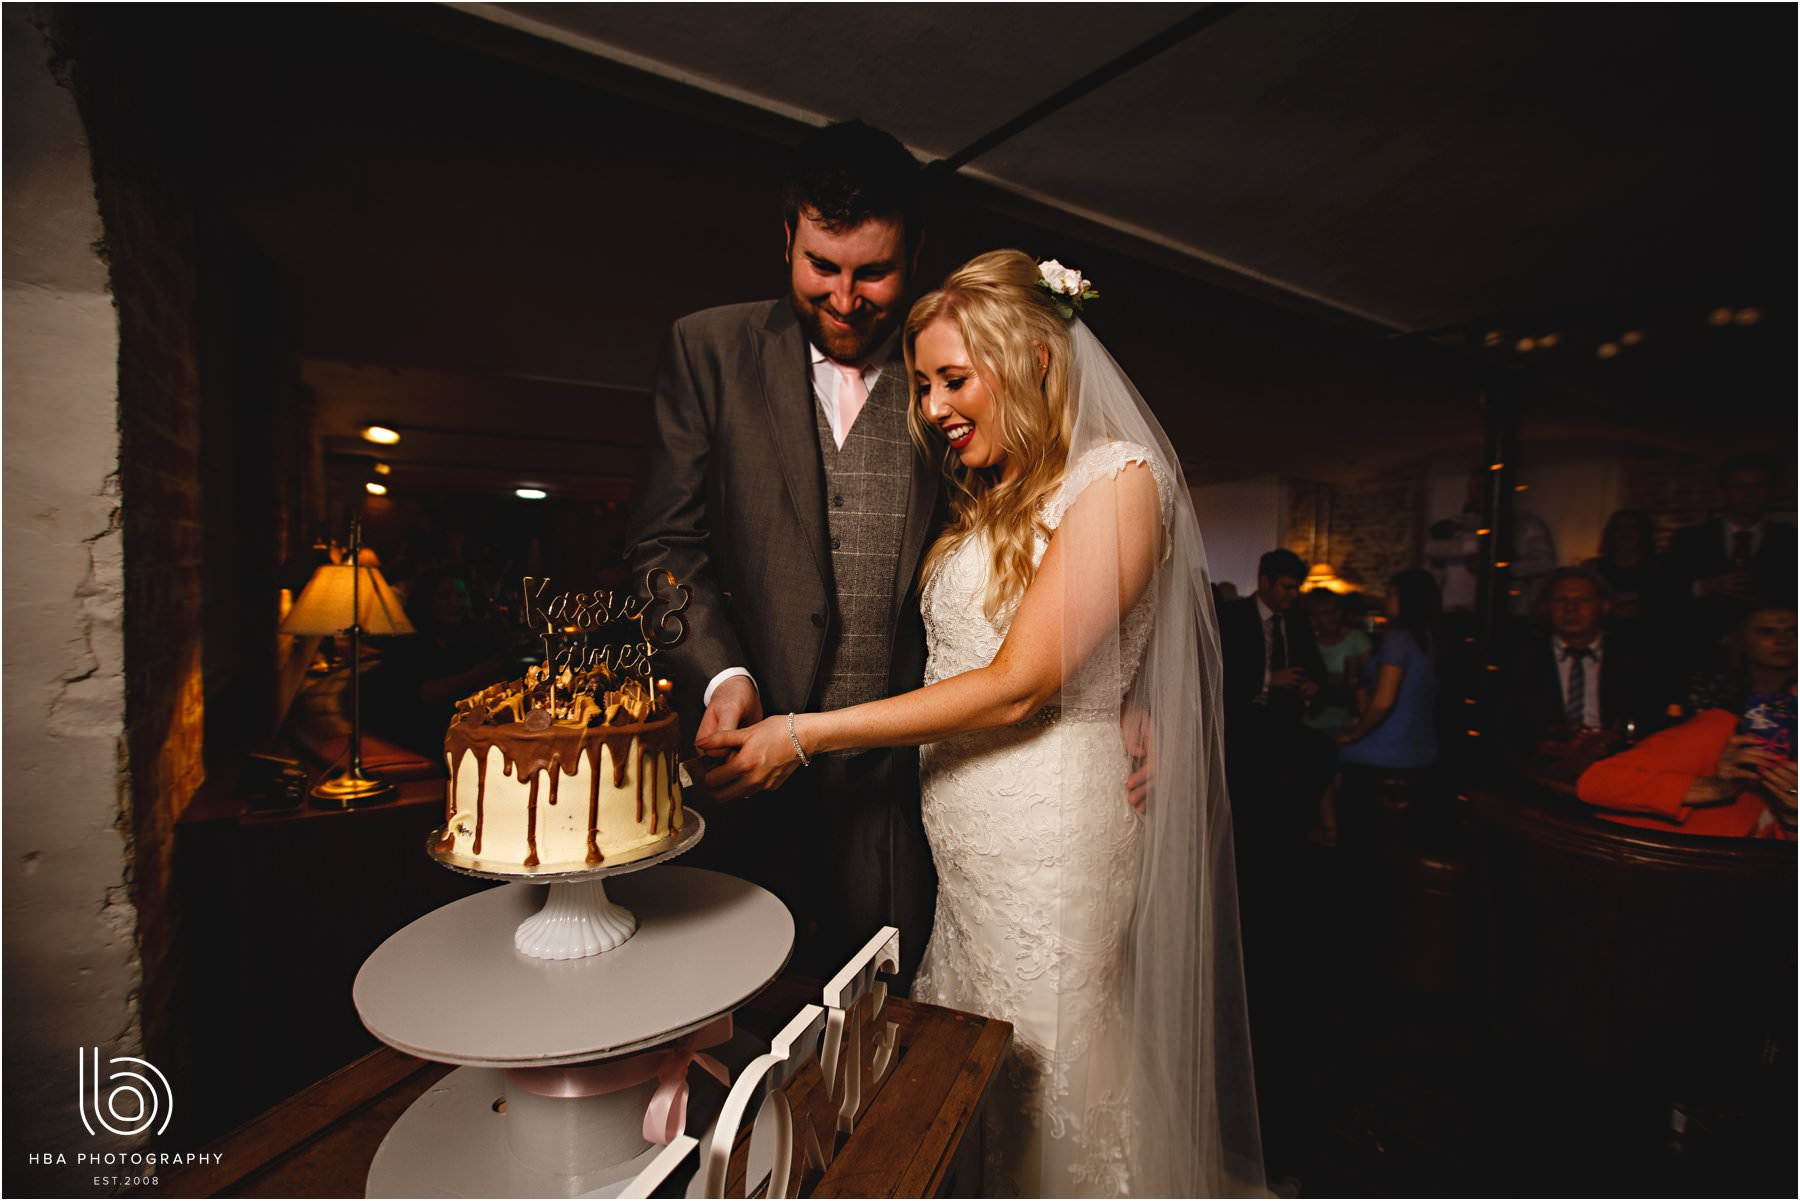 the bride & groom cutting their cake